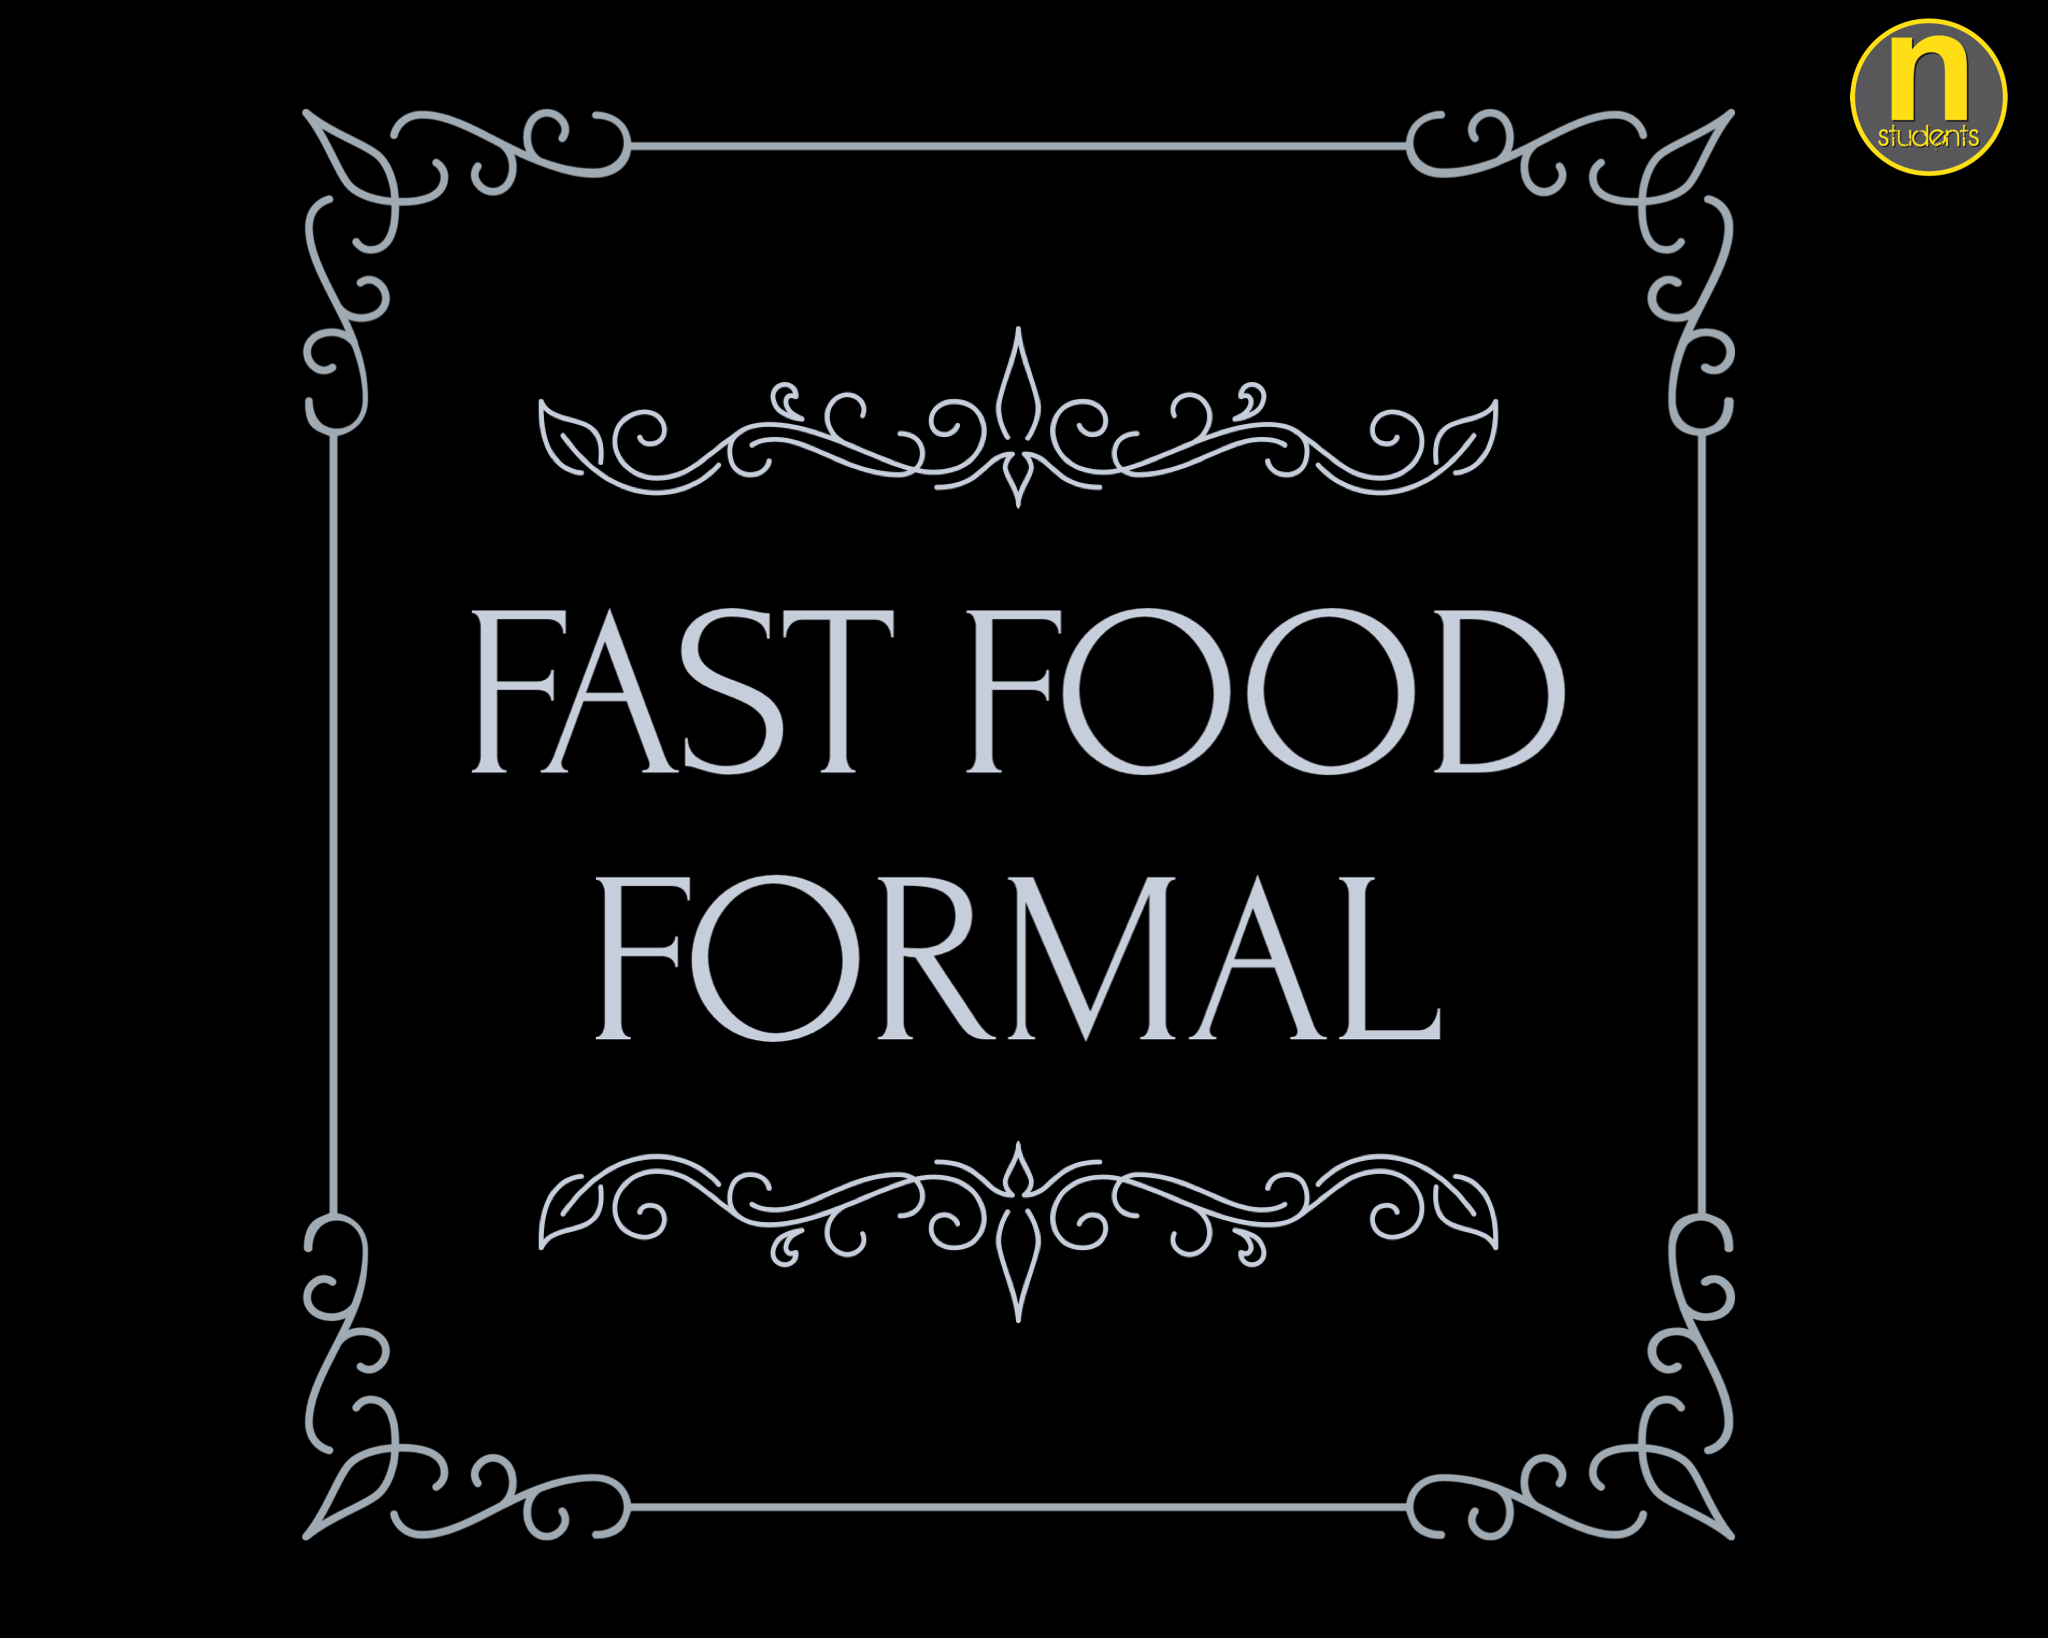 11.8 or 11.9 Fast Food Formal.PNG image